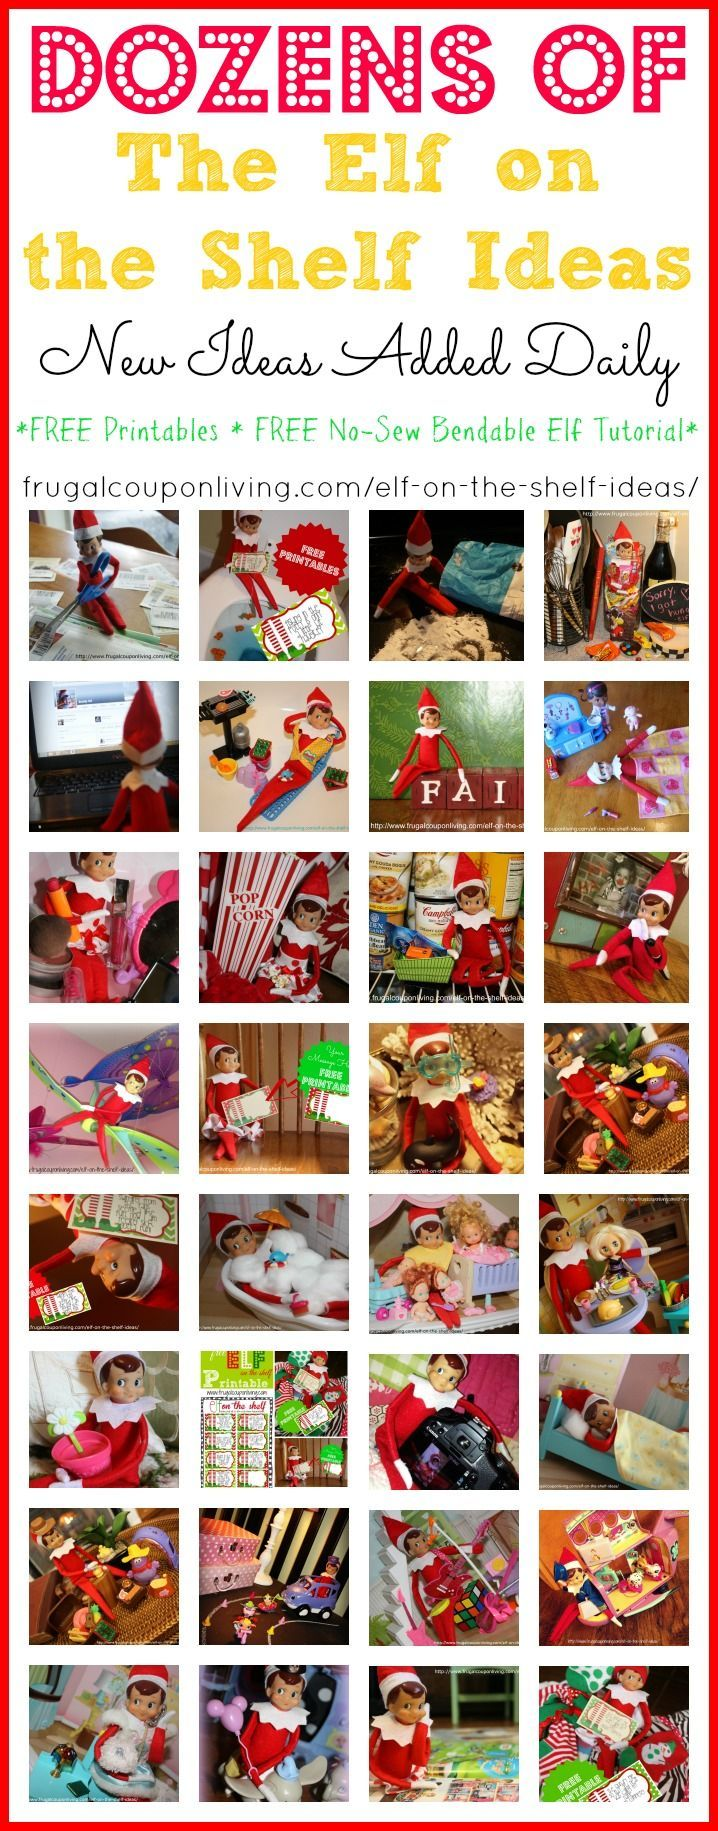 HUGE LIST of Elf on the Shelf Ideas. New Ideas added daily in Season. Free Printables and FREE No-Sew Bendable Elf Tutorial #elfontheshelf #elfontheshelfideas #elfontheshelfprintable